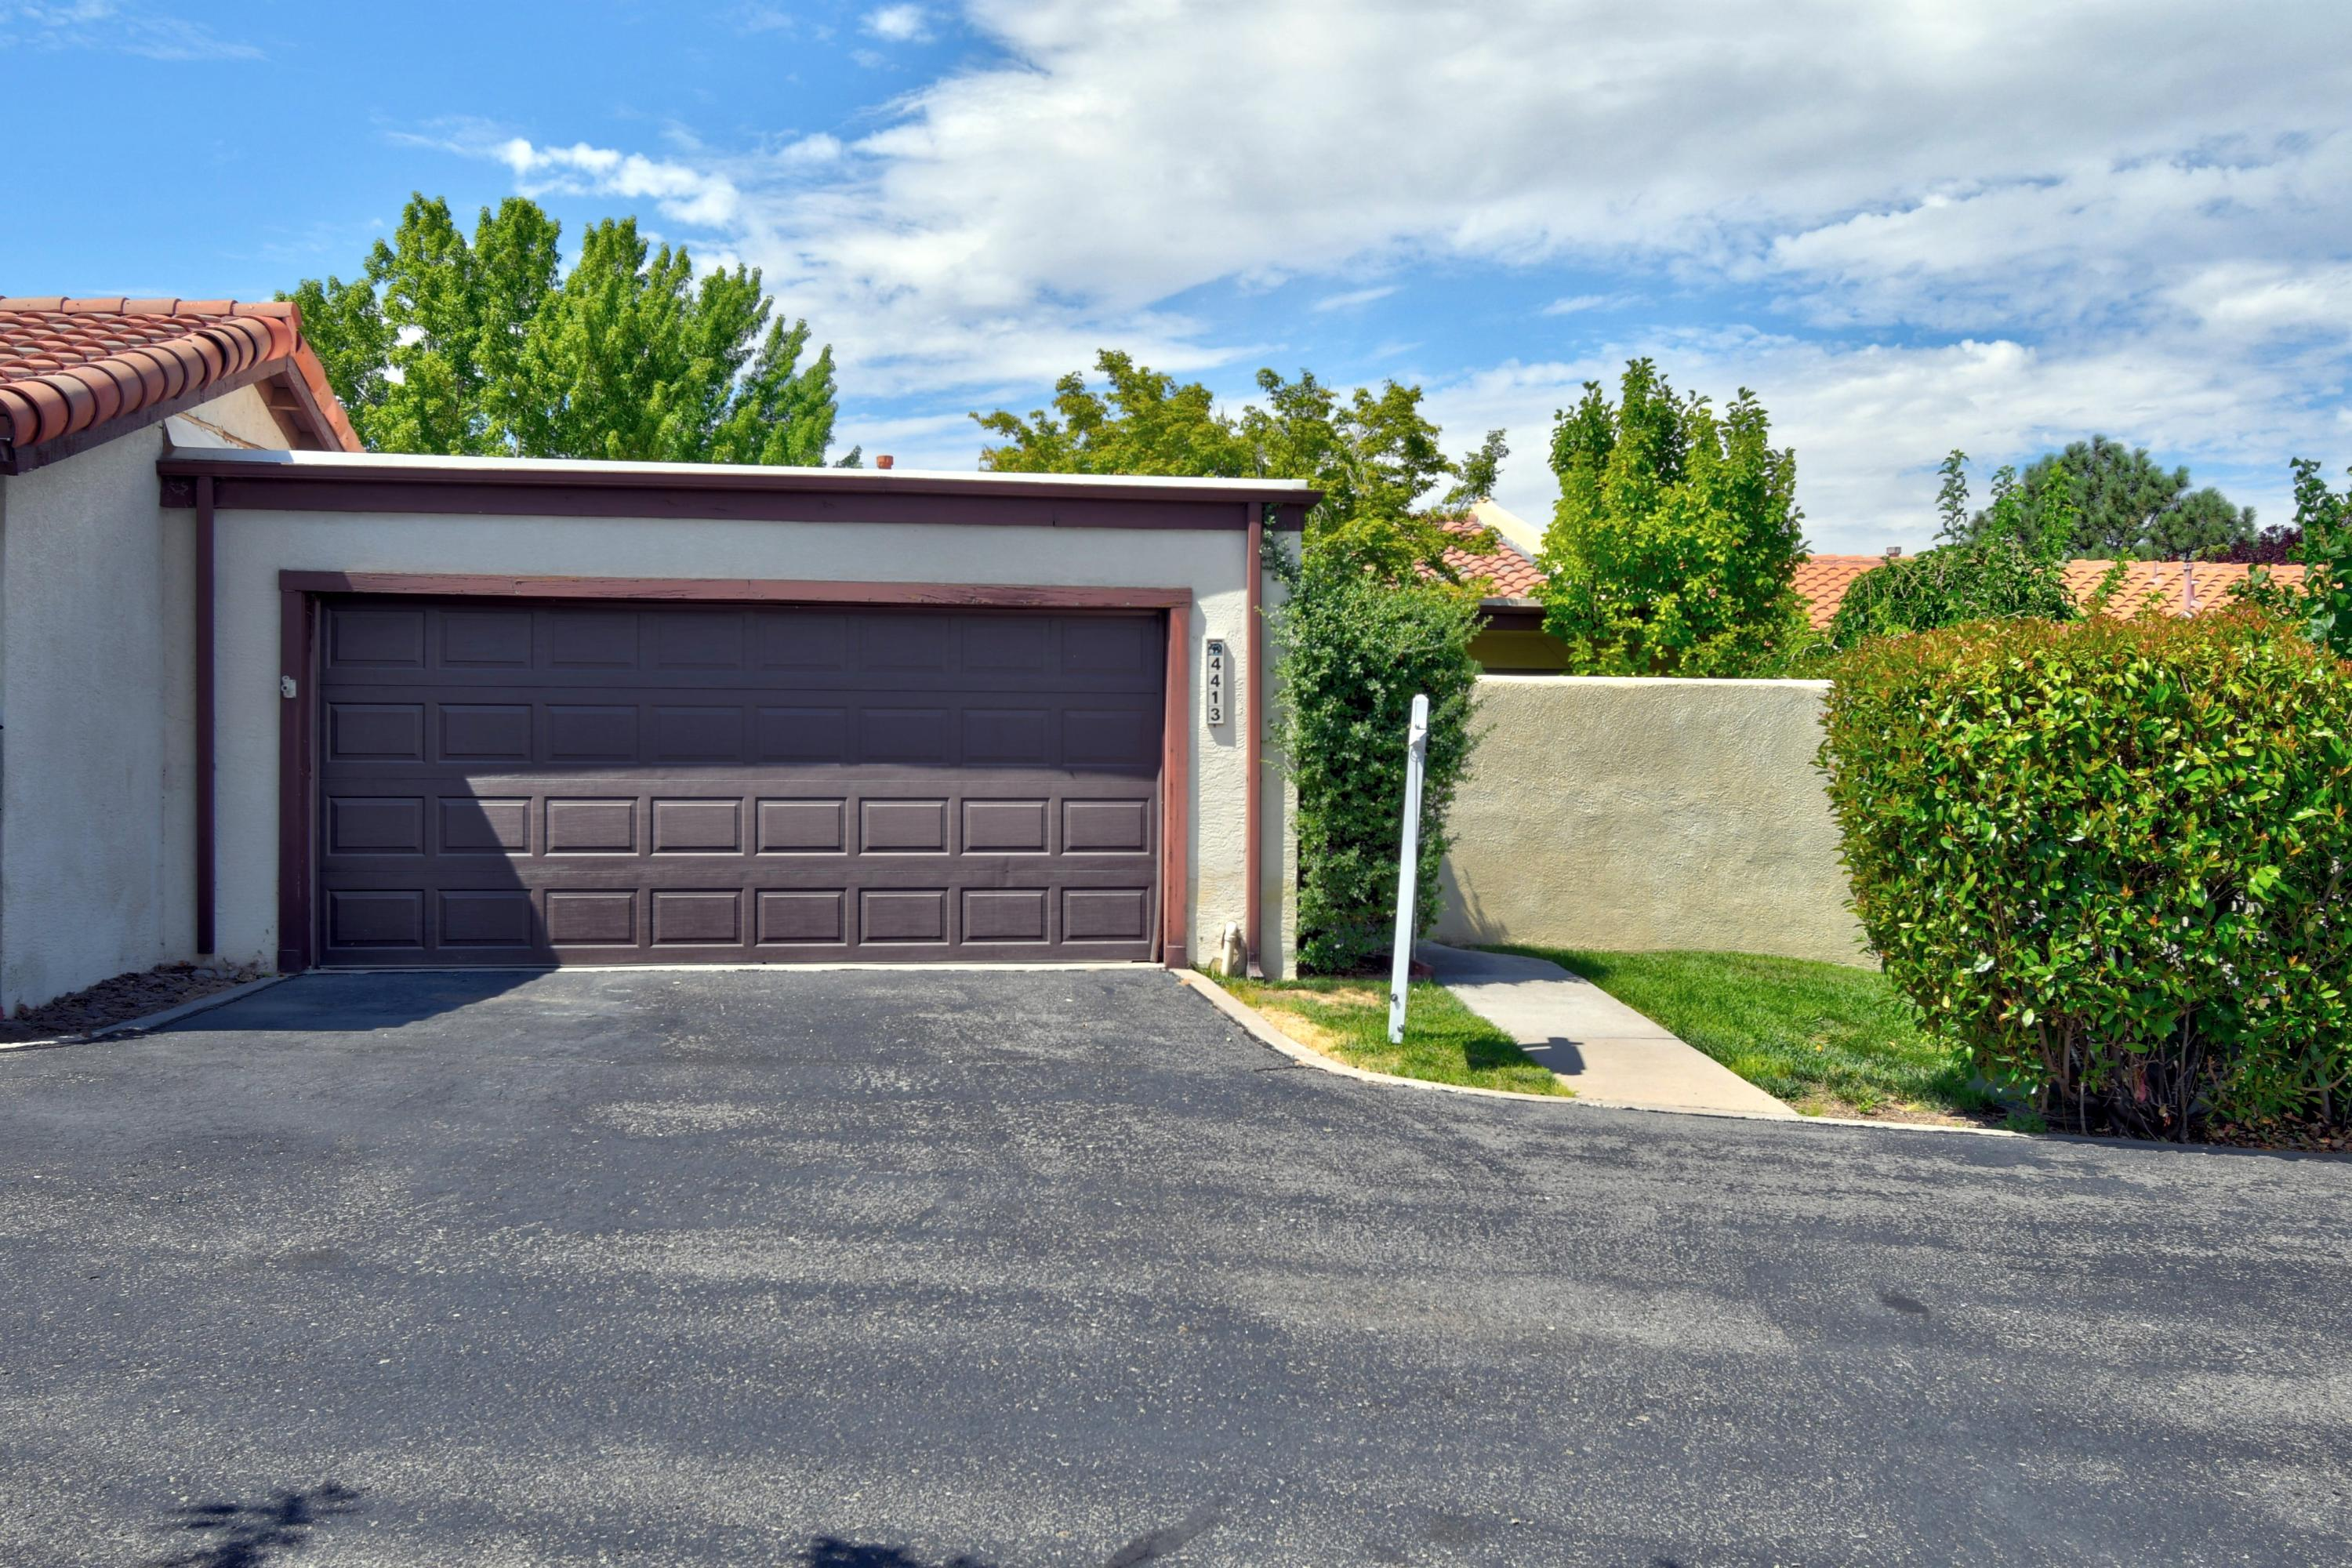 4413 KELLIA Lane NE Property Photo - Albuquerque, NM real estate listing